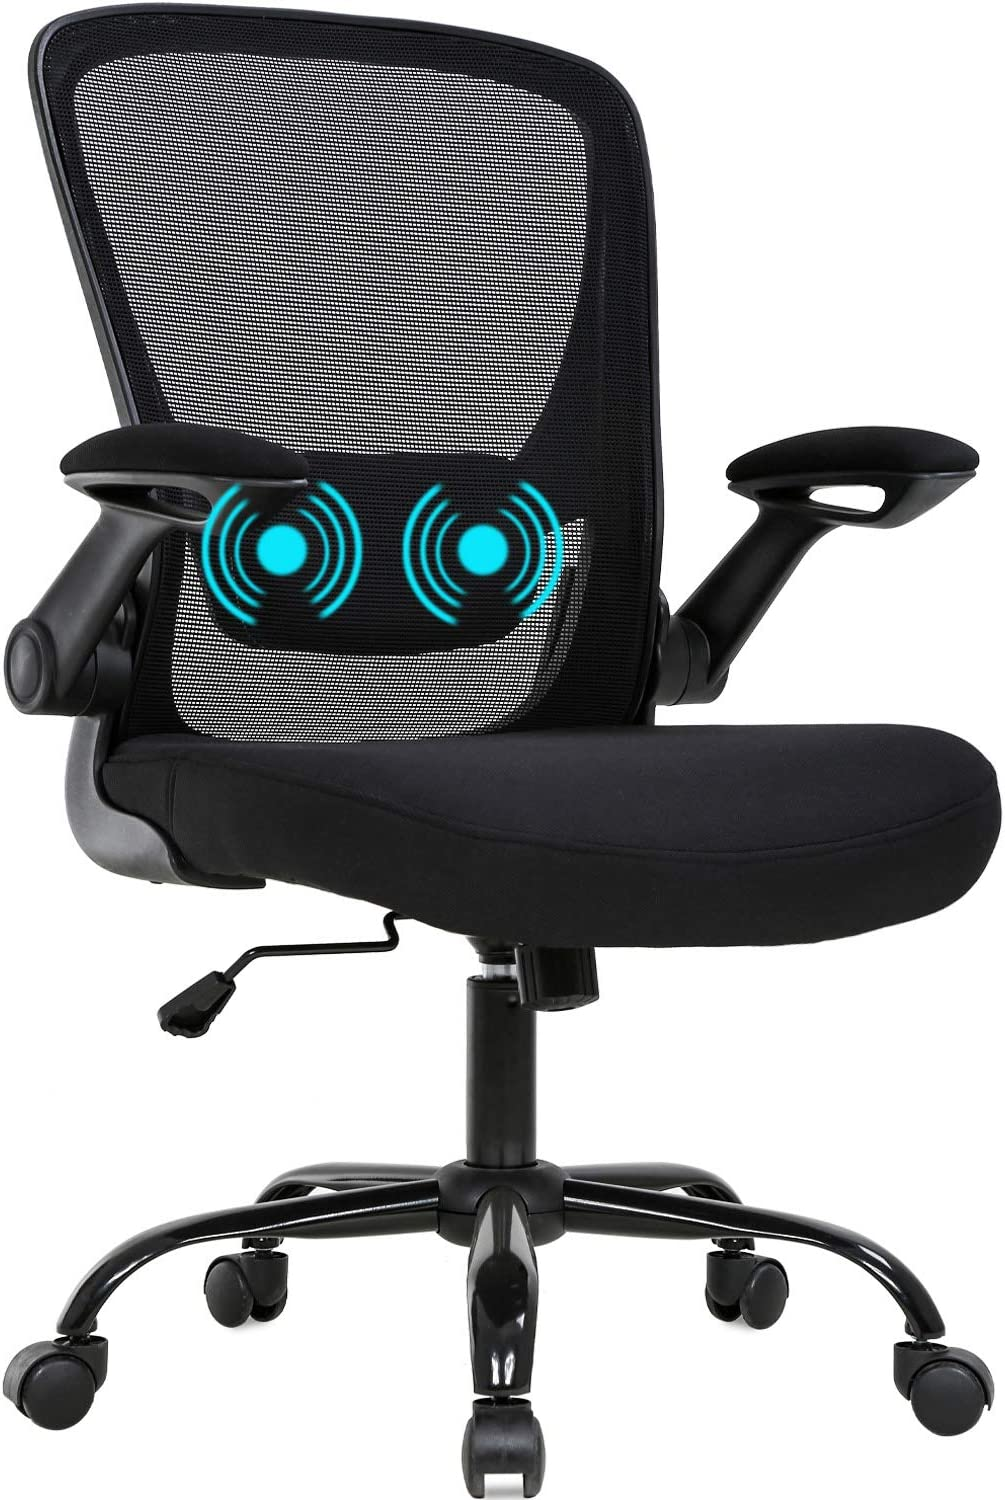 Office Chair Ergonomic Desk Chair Mesh Computer Chair Swivel Rolling Mid Back Task Chair with Lumbar Support Flip-up Arms MassageAdjustable Chair for Women Adults(Black)